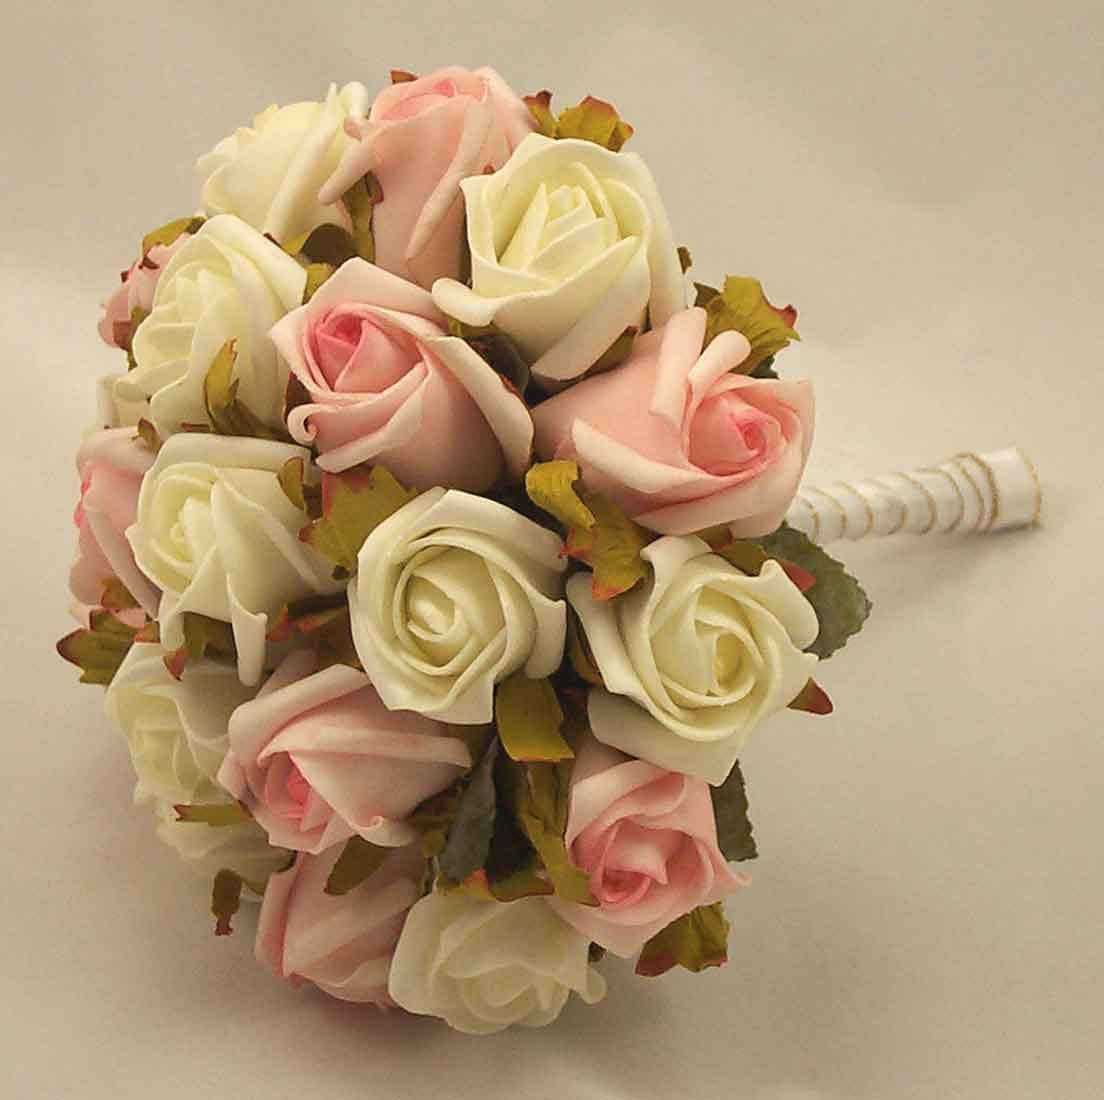 Pink & White Jubilee Rose Bridesmaid's Bouquet